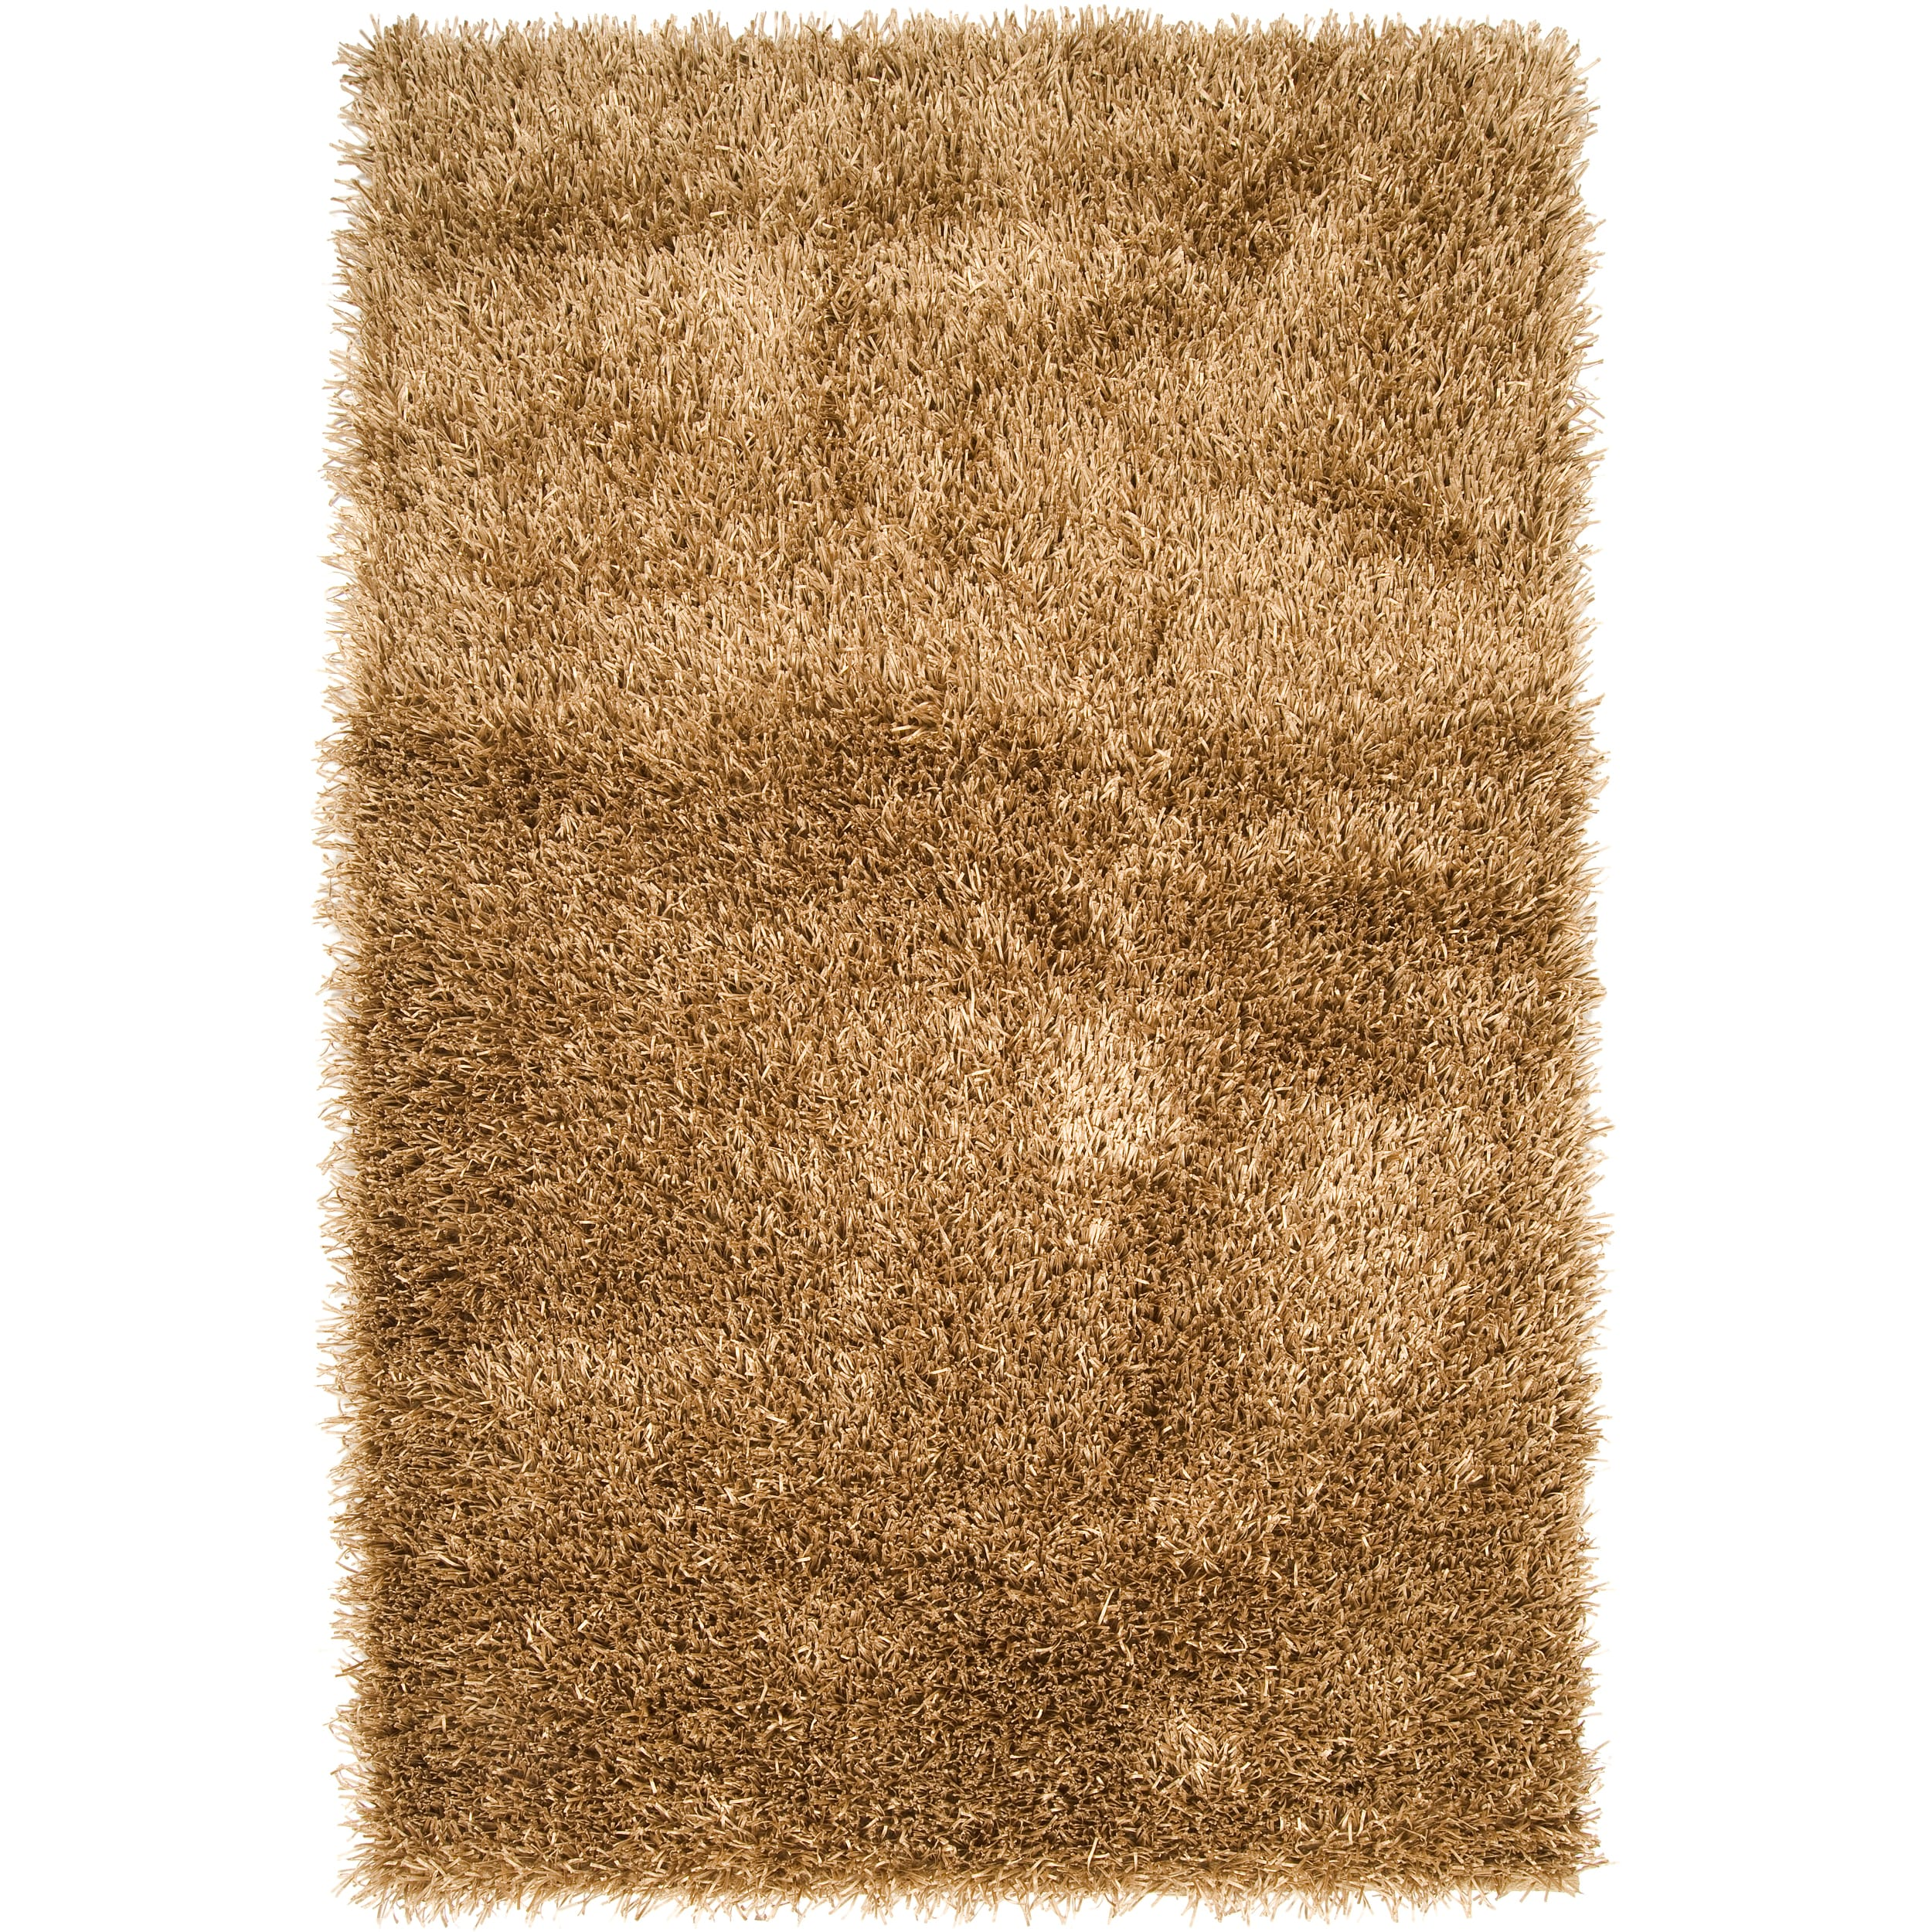 Hand-woven Gold South Hampton Soft Plush Shag Rug (3'6 x 5'6)